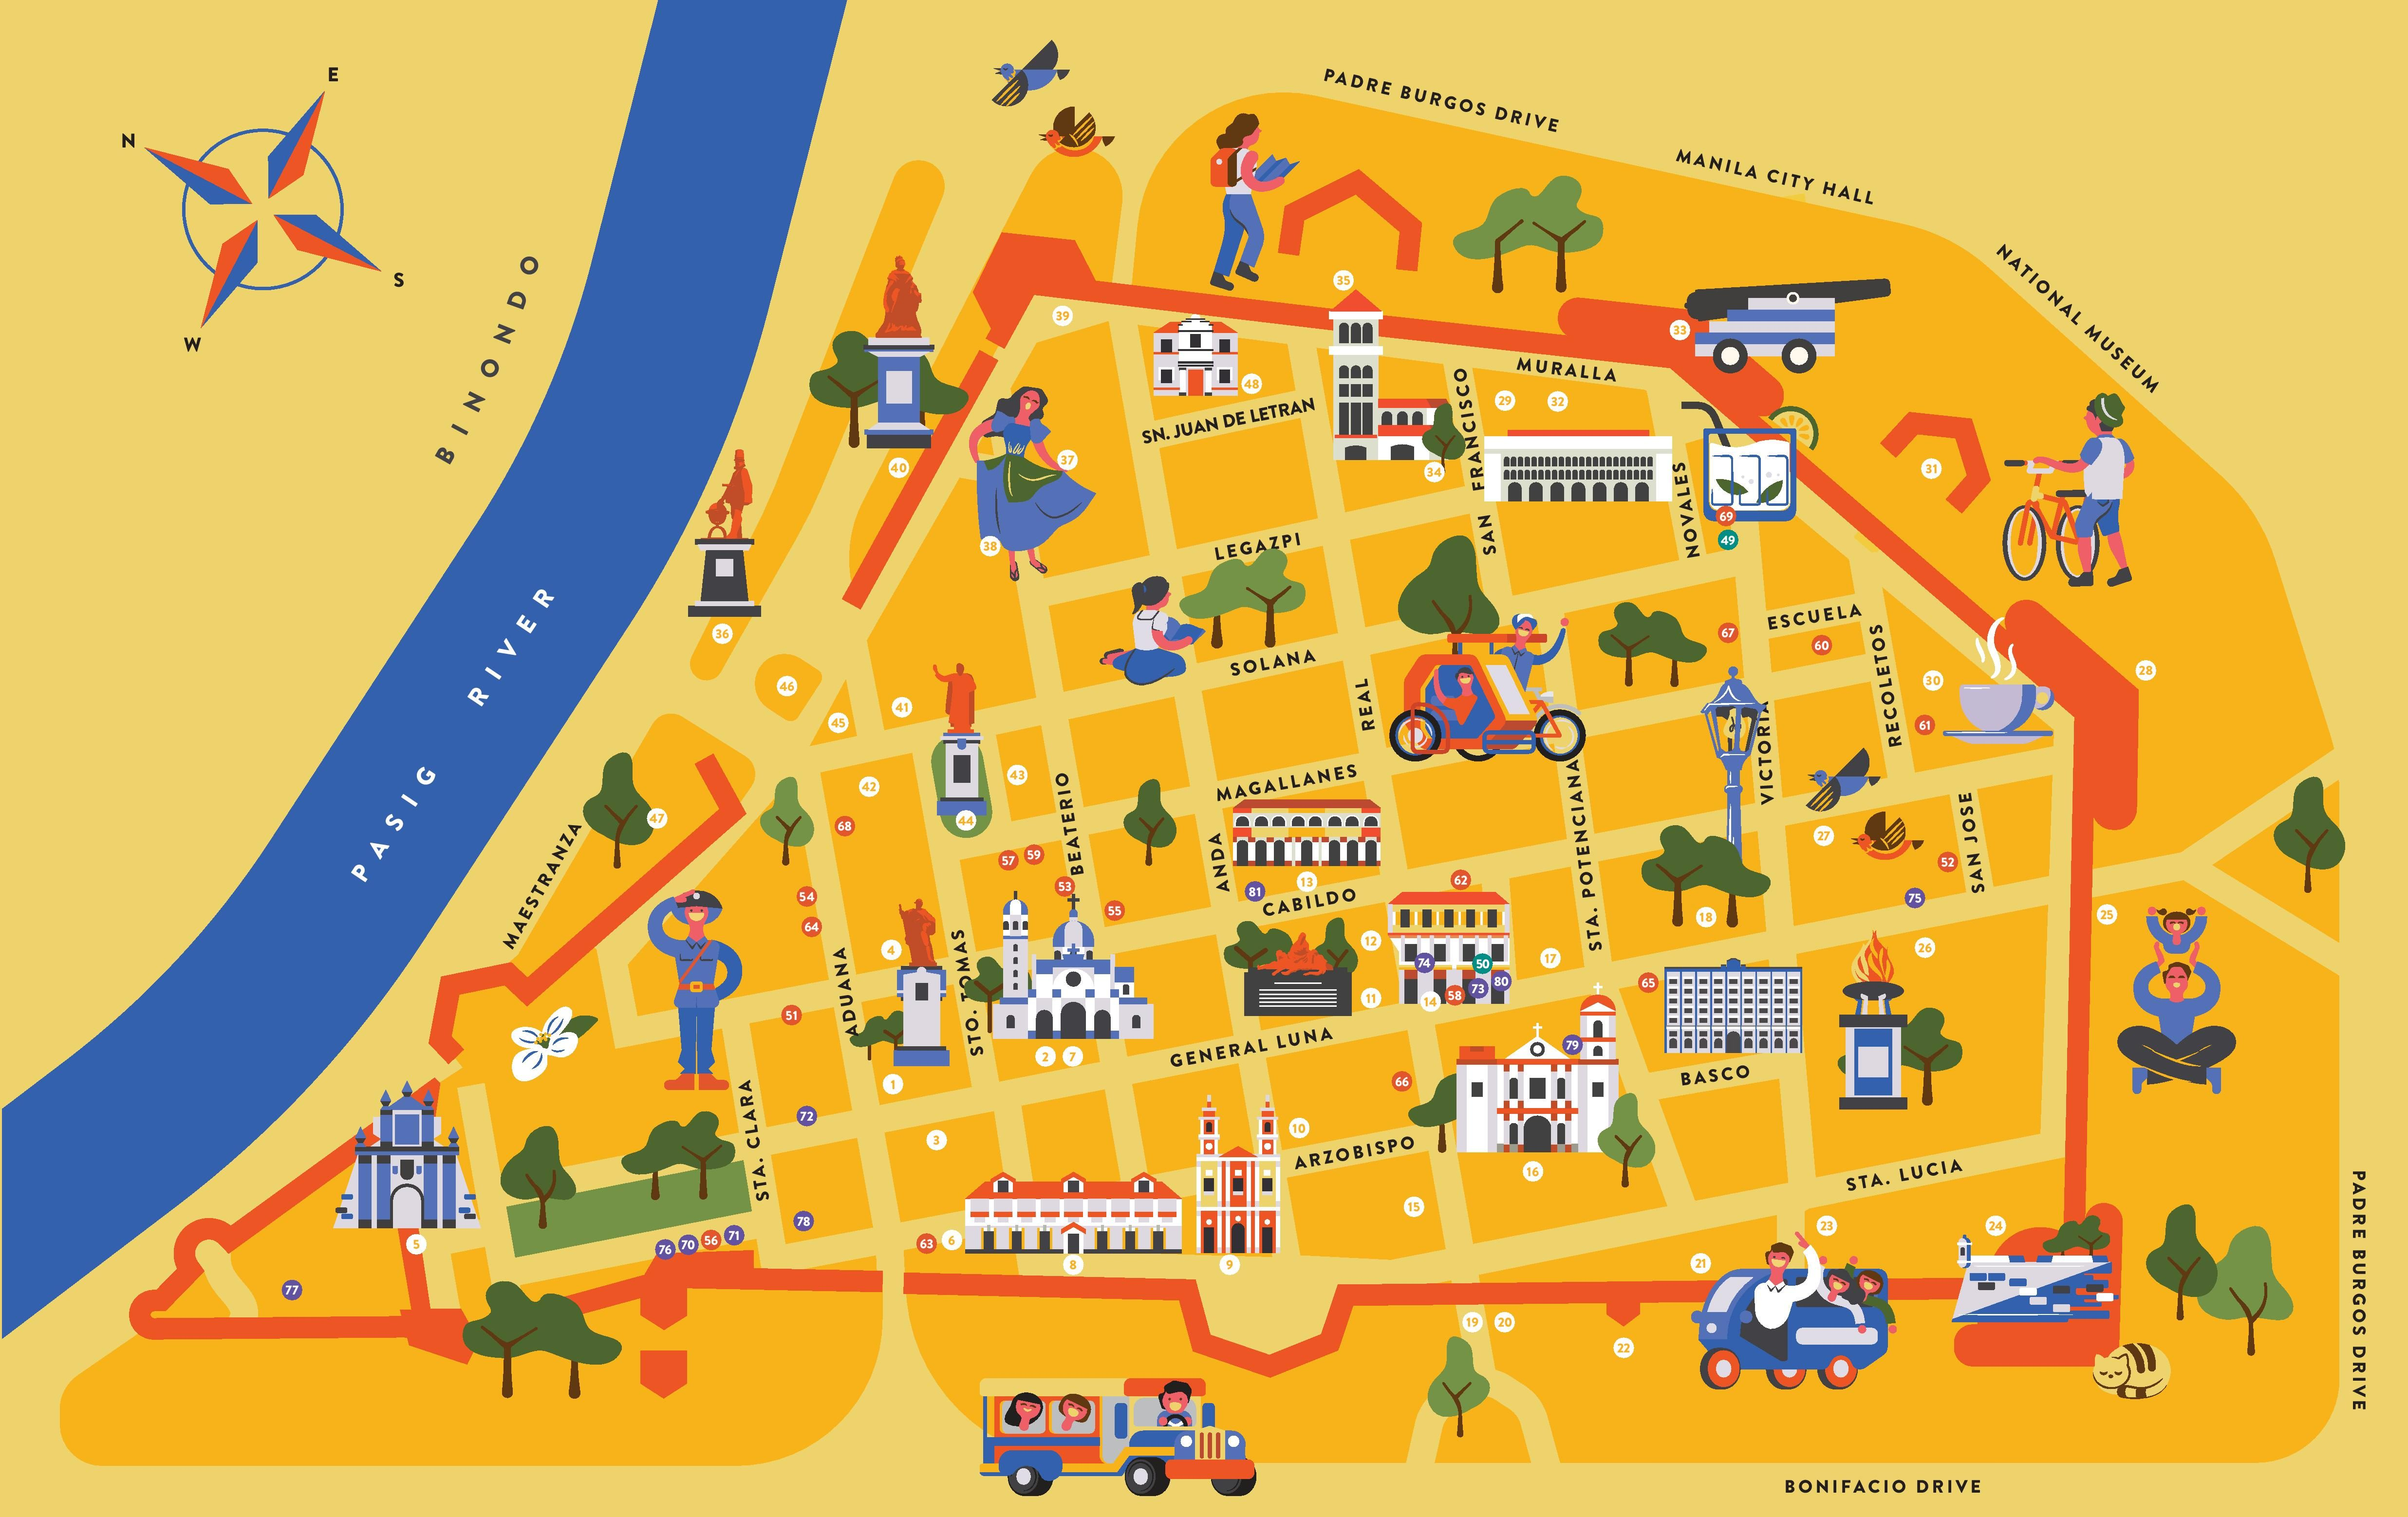 Elite San Jose >> Take a DIY tour of Intramuros with the help of these free colorful maps - NOLISOLI